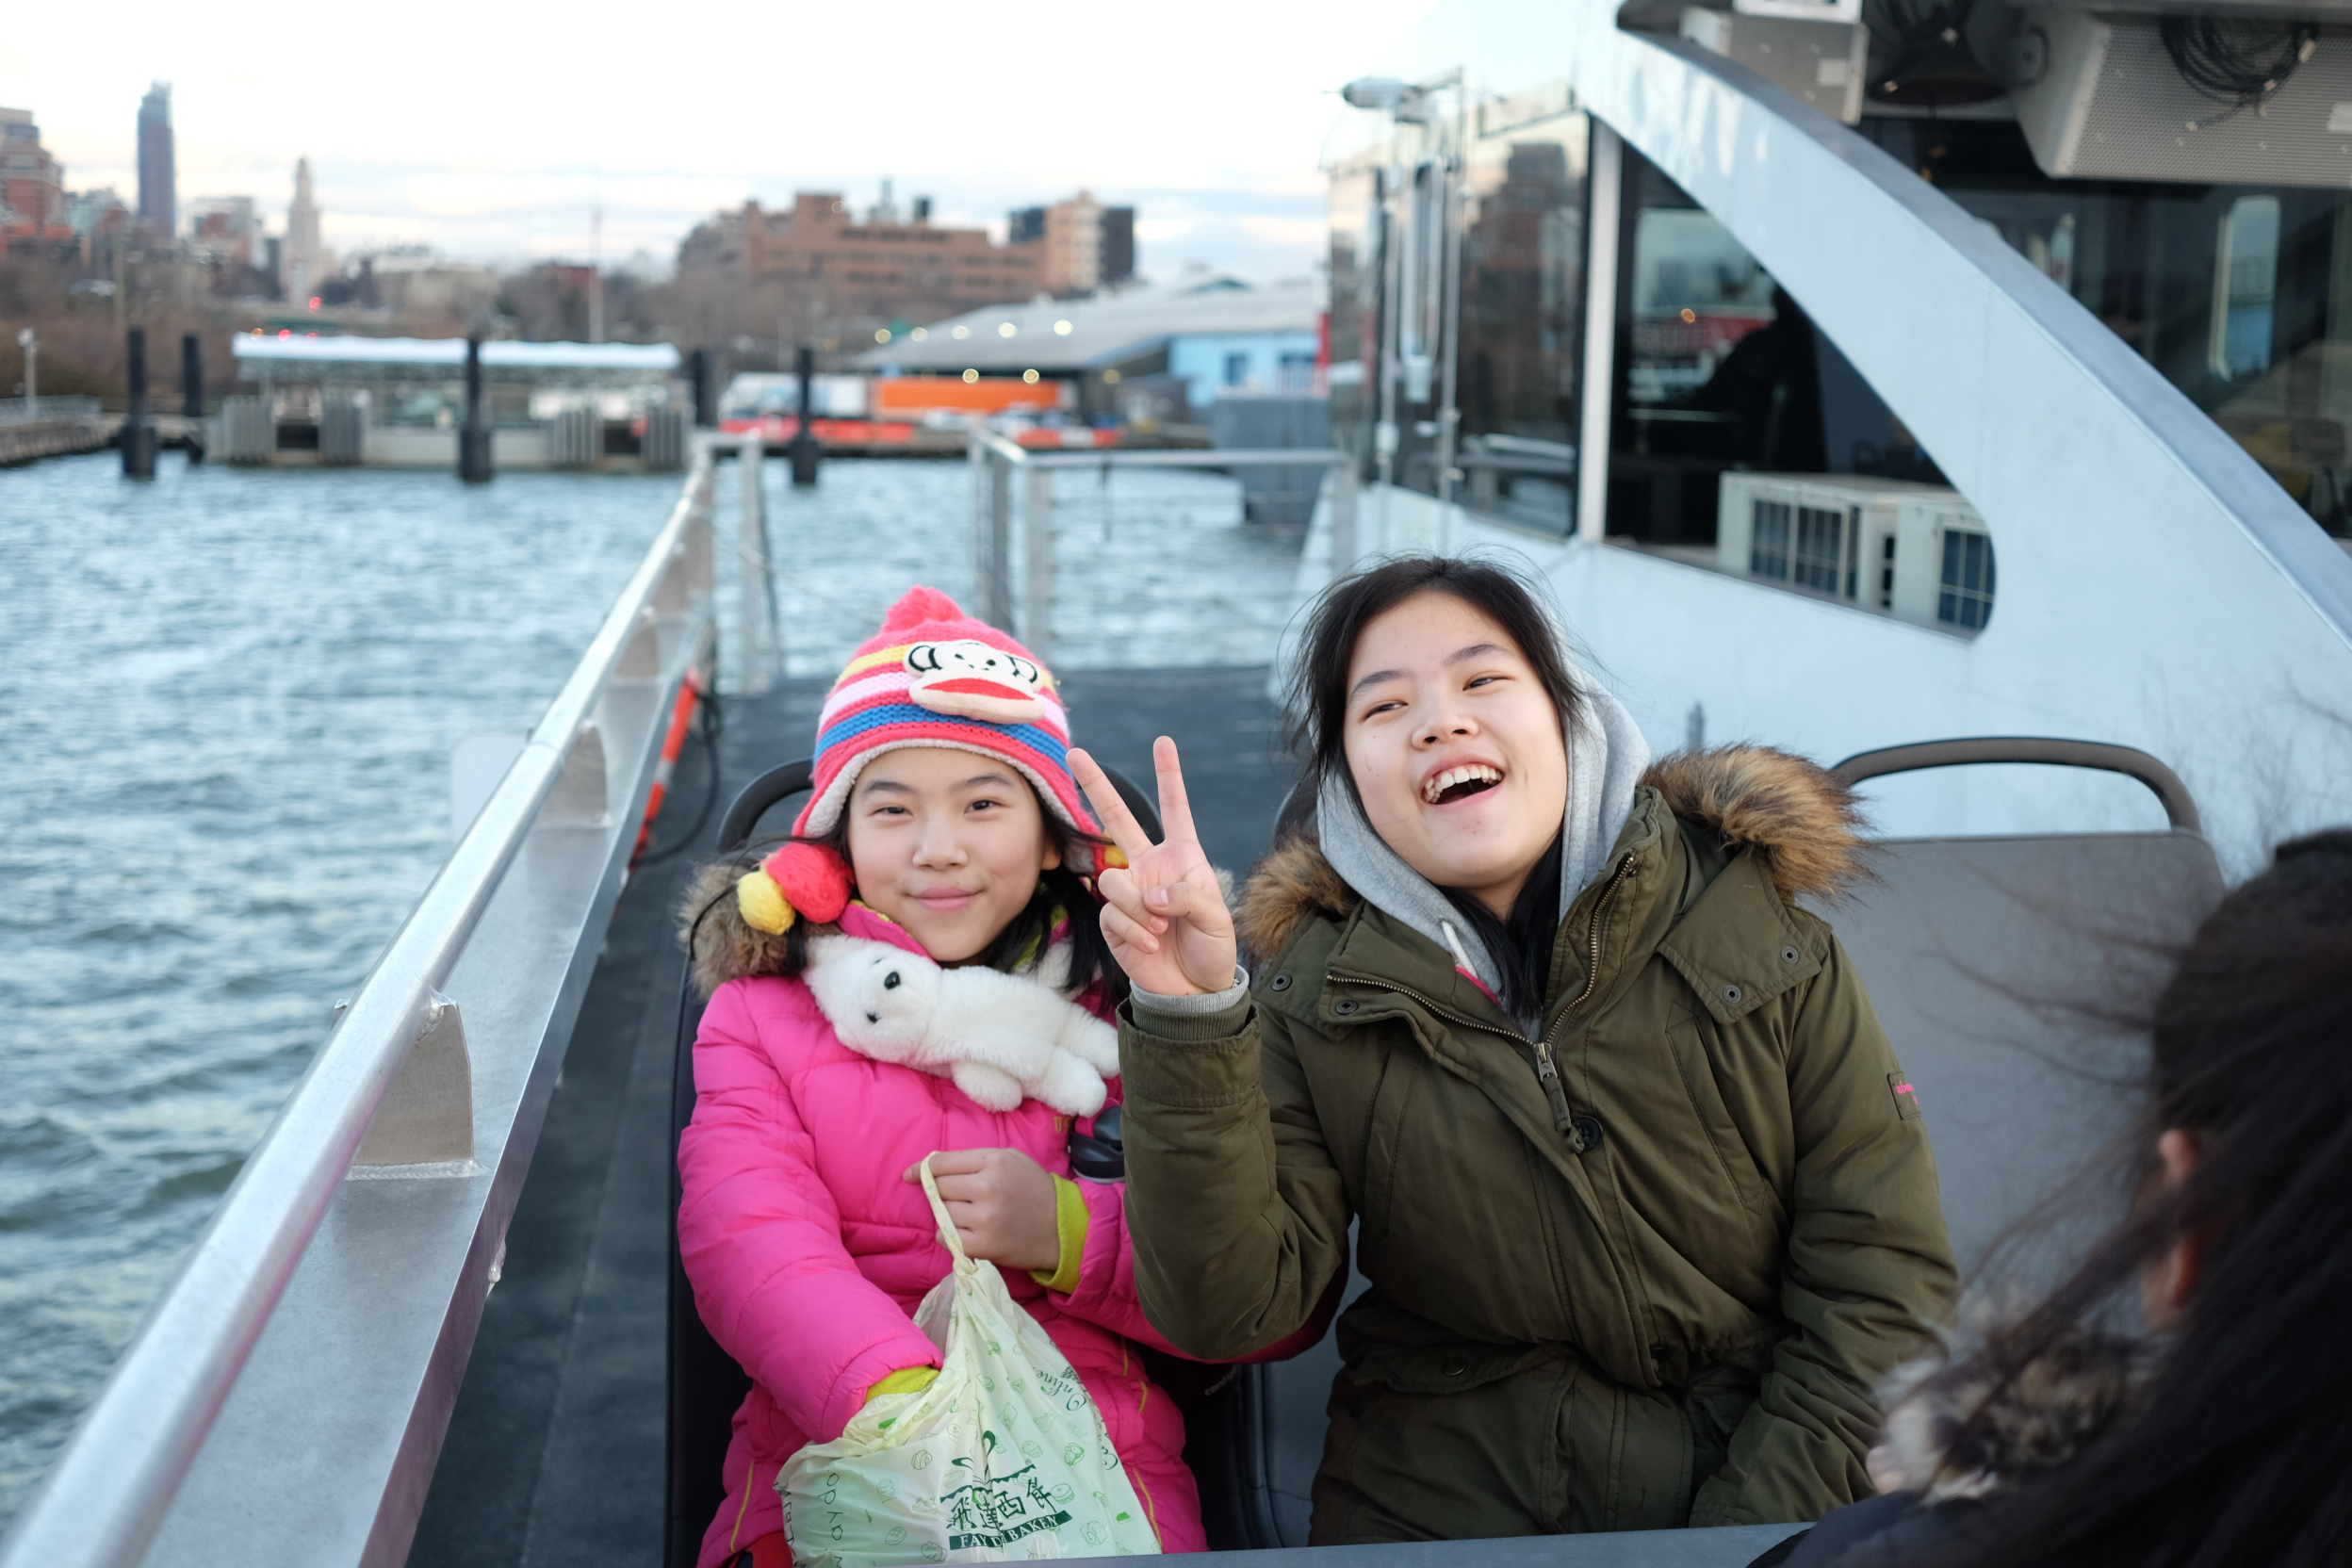 Students from the Red hook neighborhood school, ps 676, taking a portside field trip on nyc ferry.